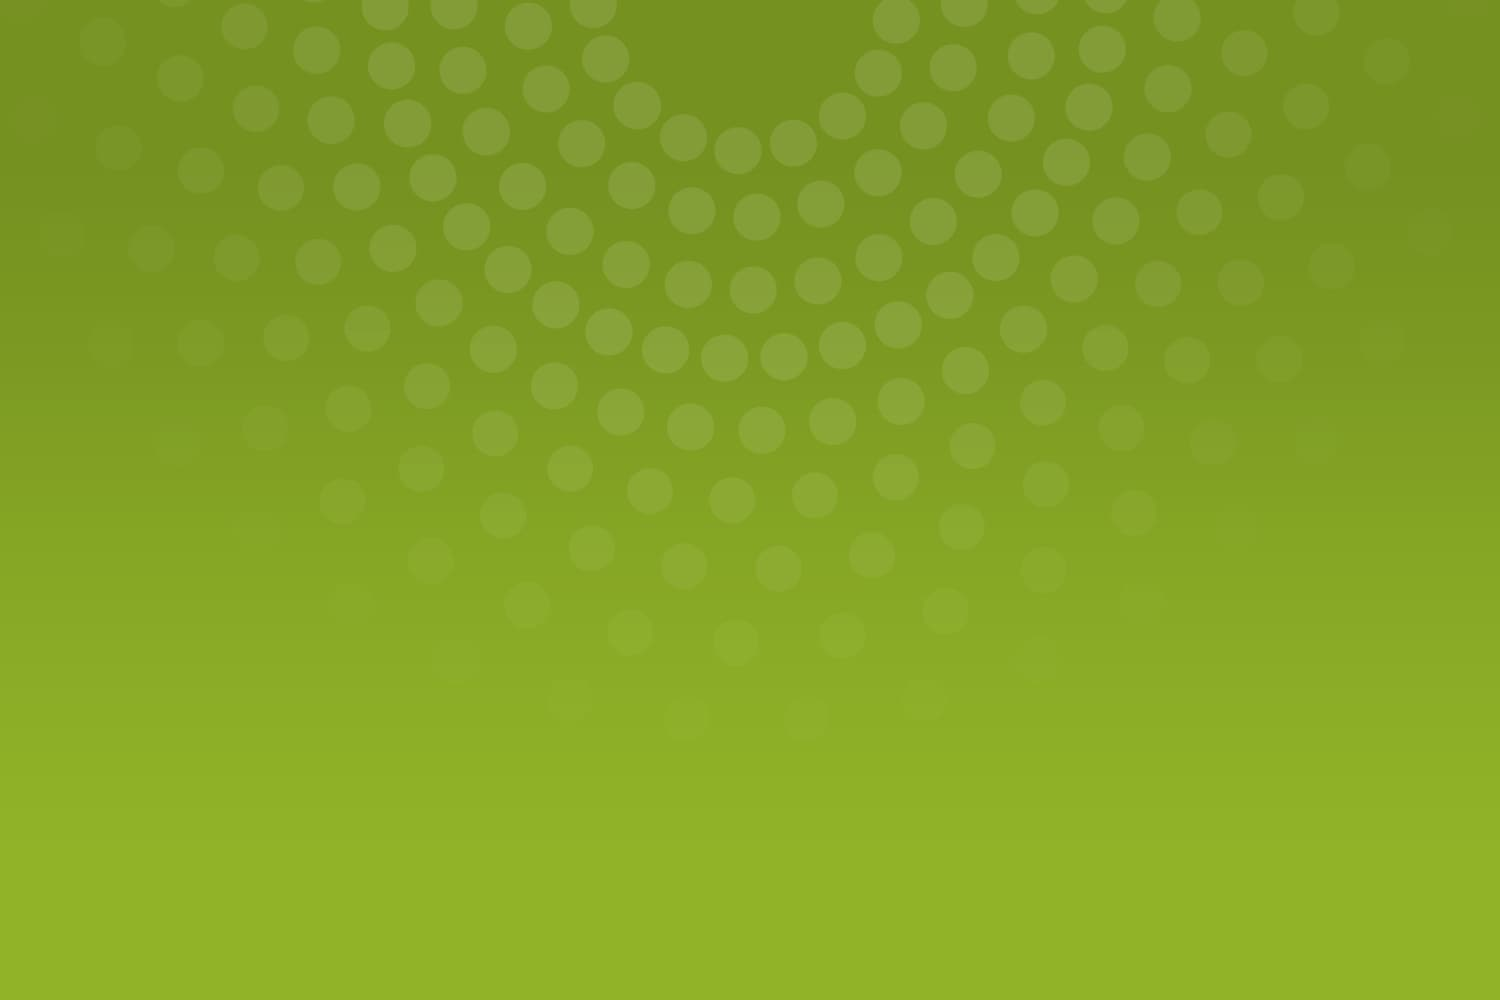 Abstract radiance art on green background